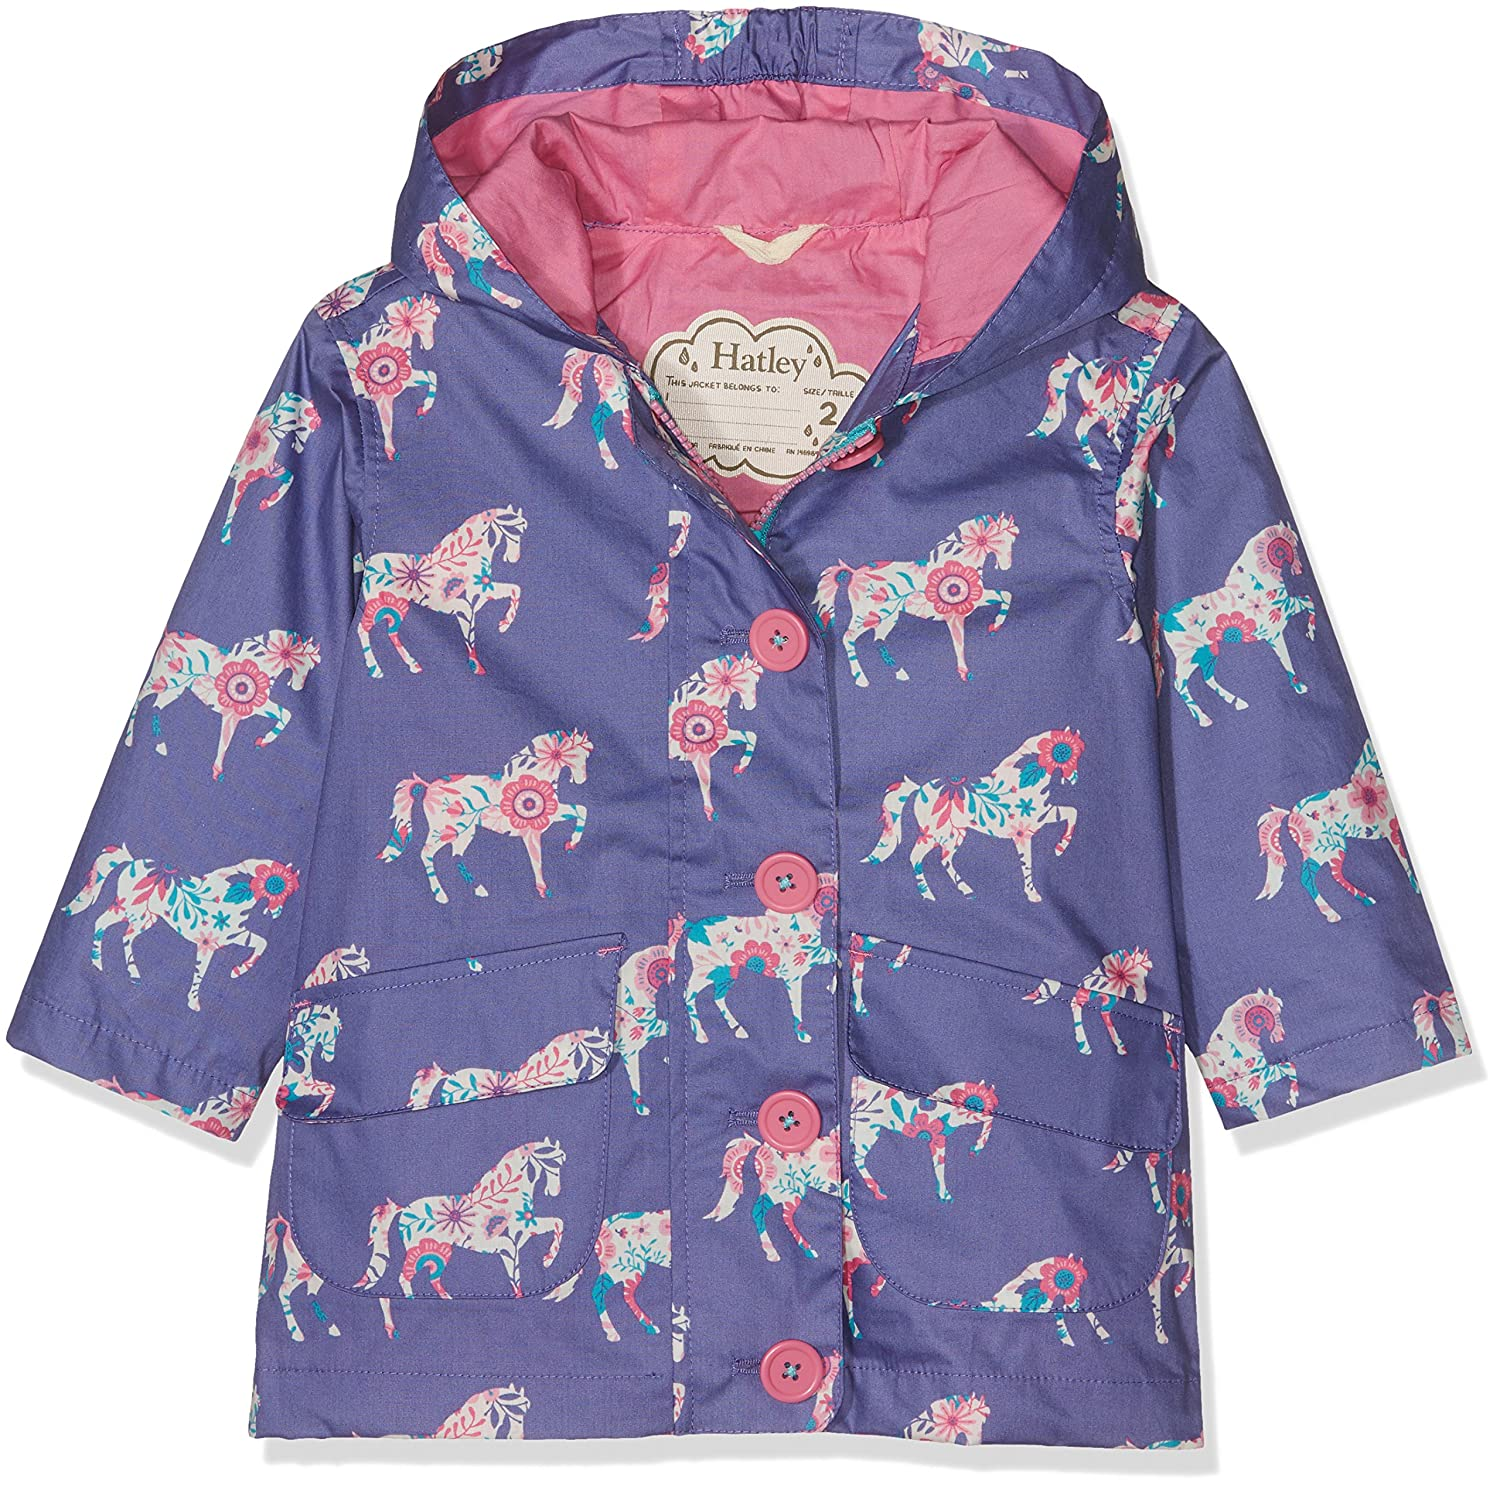 Hatley Girls' Cotton Coated Raincoats Hatley Children's Apparel